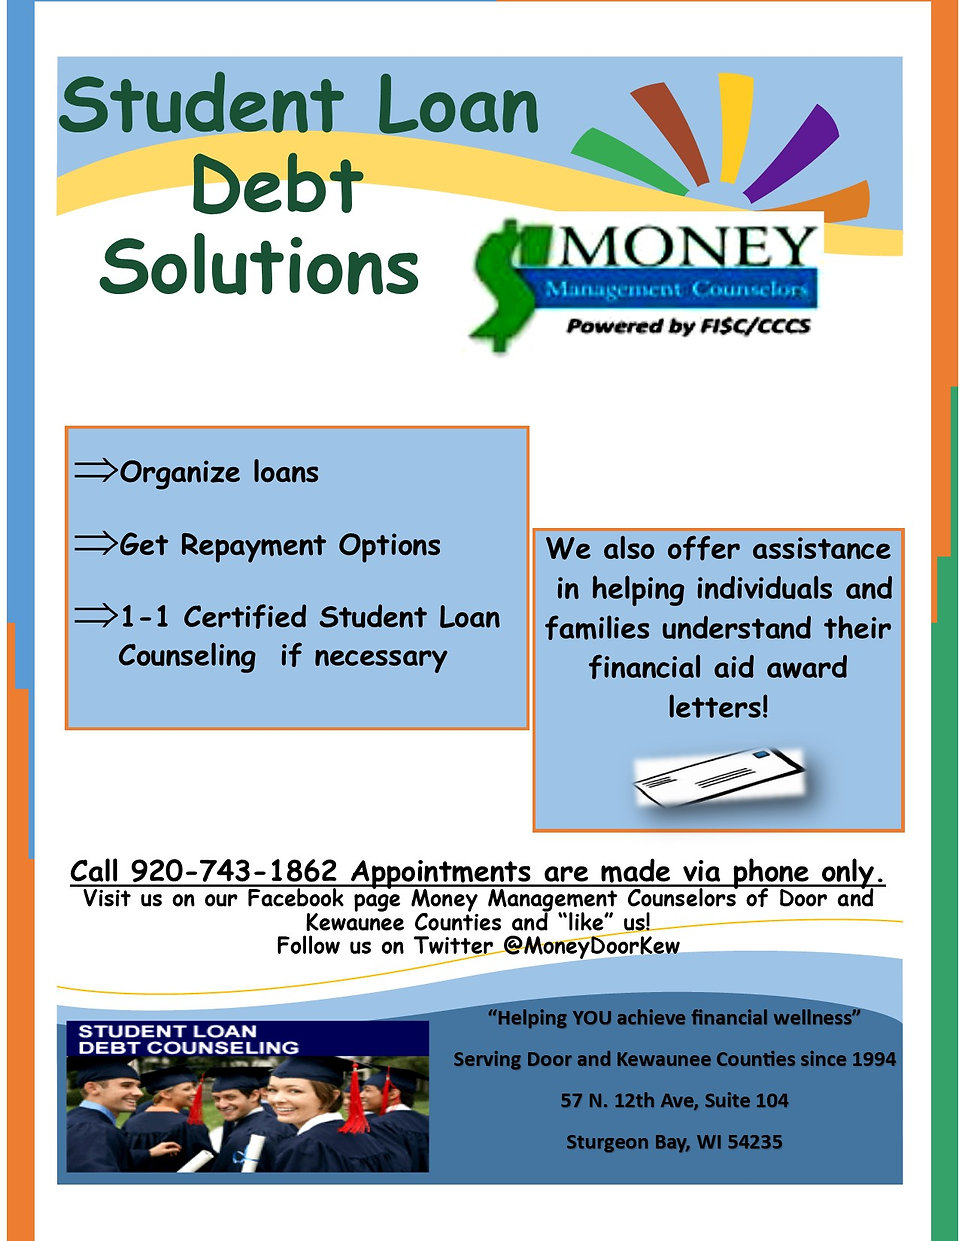 Student Loan Solutions Poster 2019.jpg